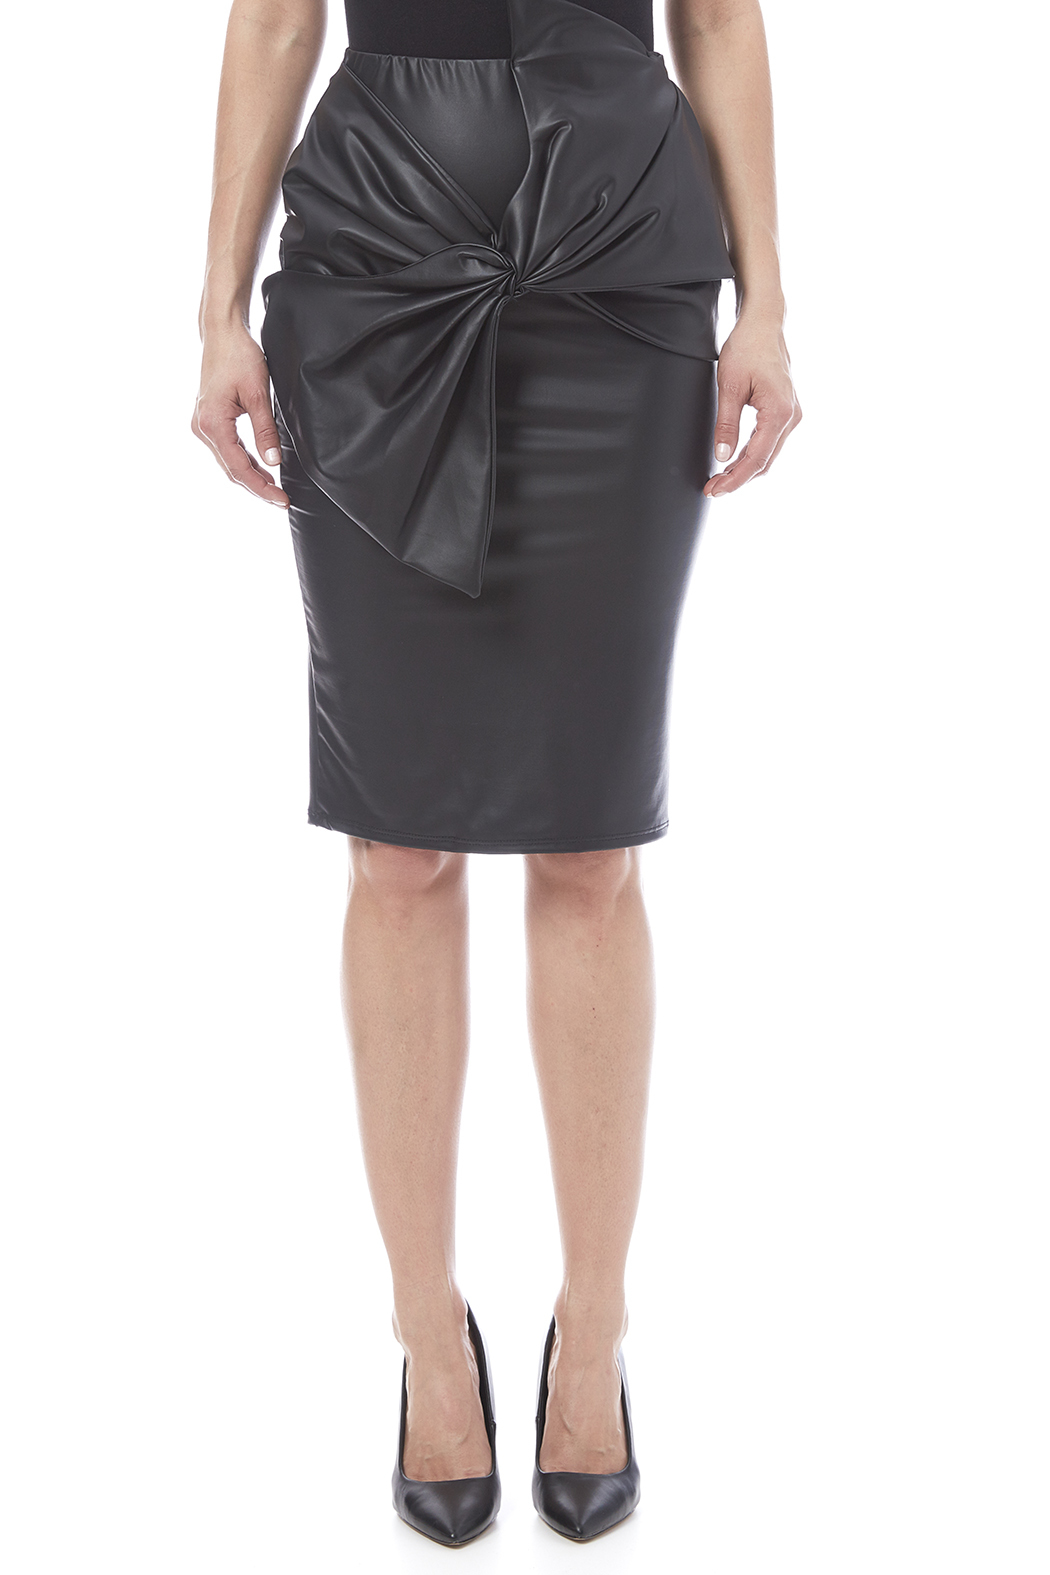 Auditions Faux Leather Pencil Skirt - Side Cropped Image